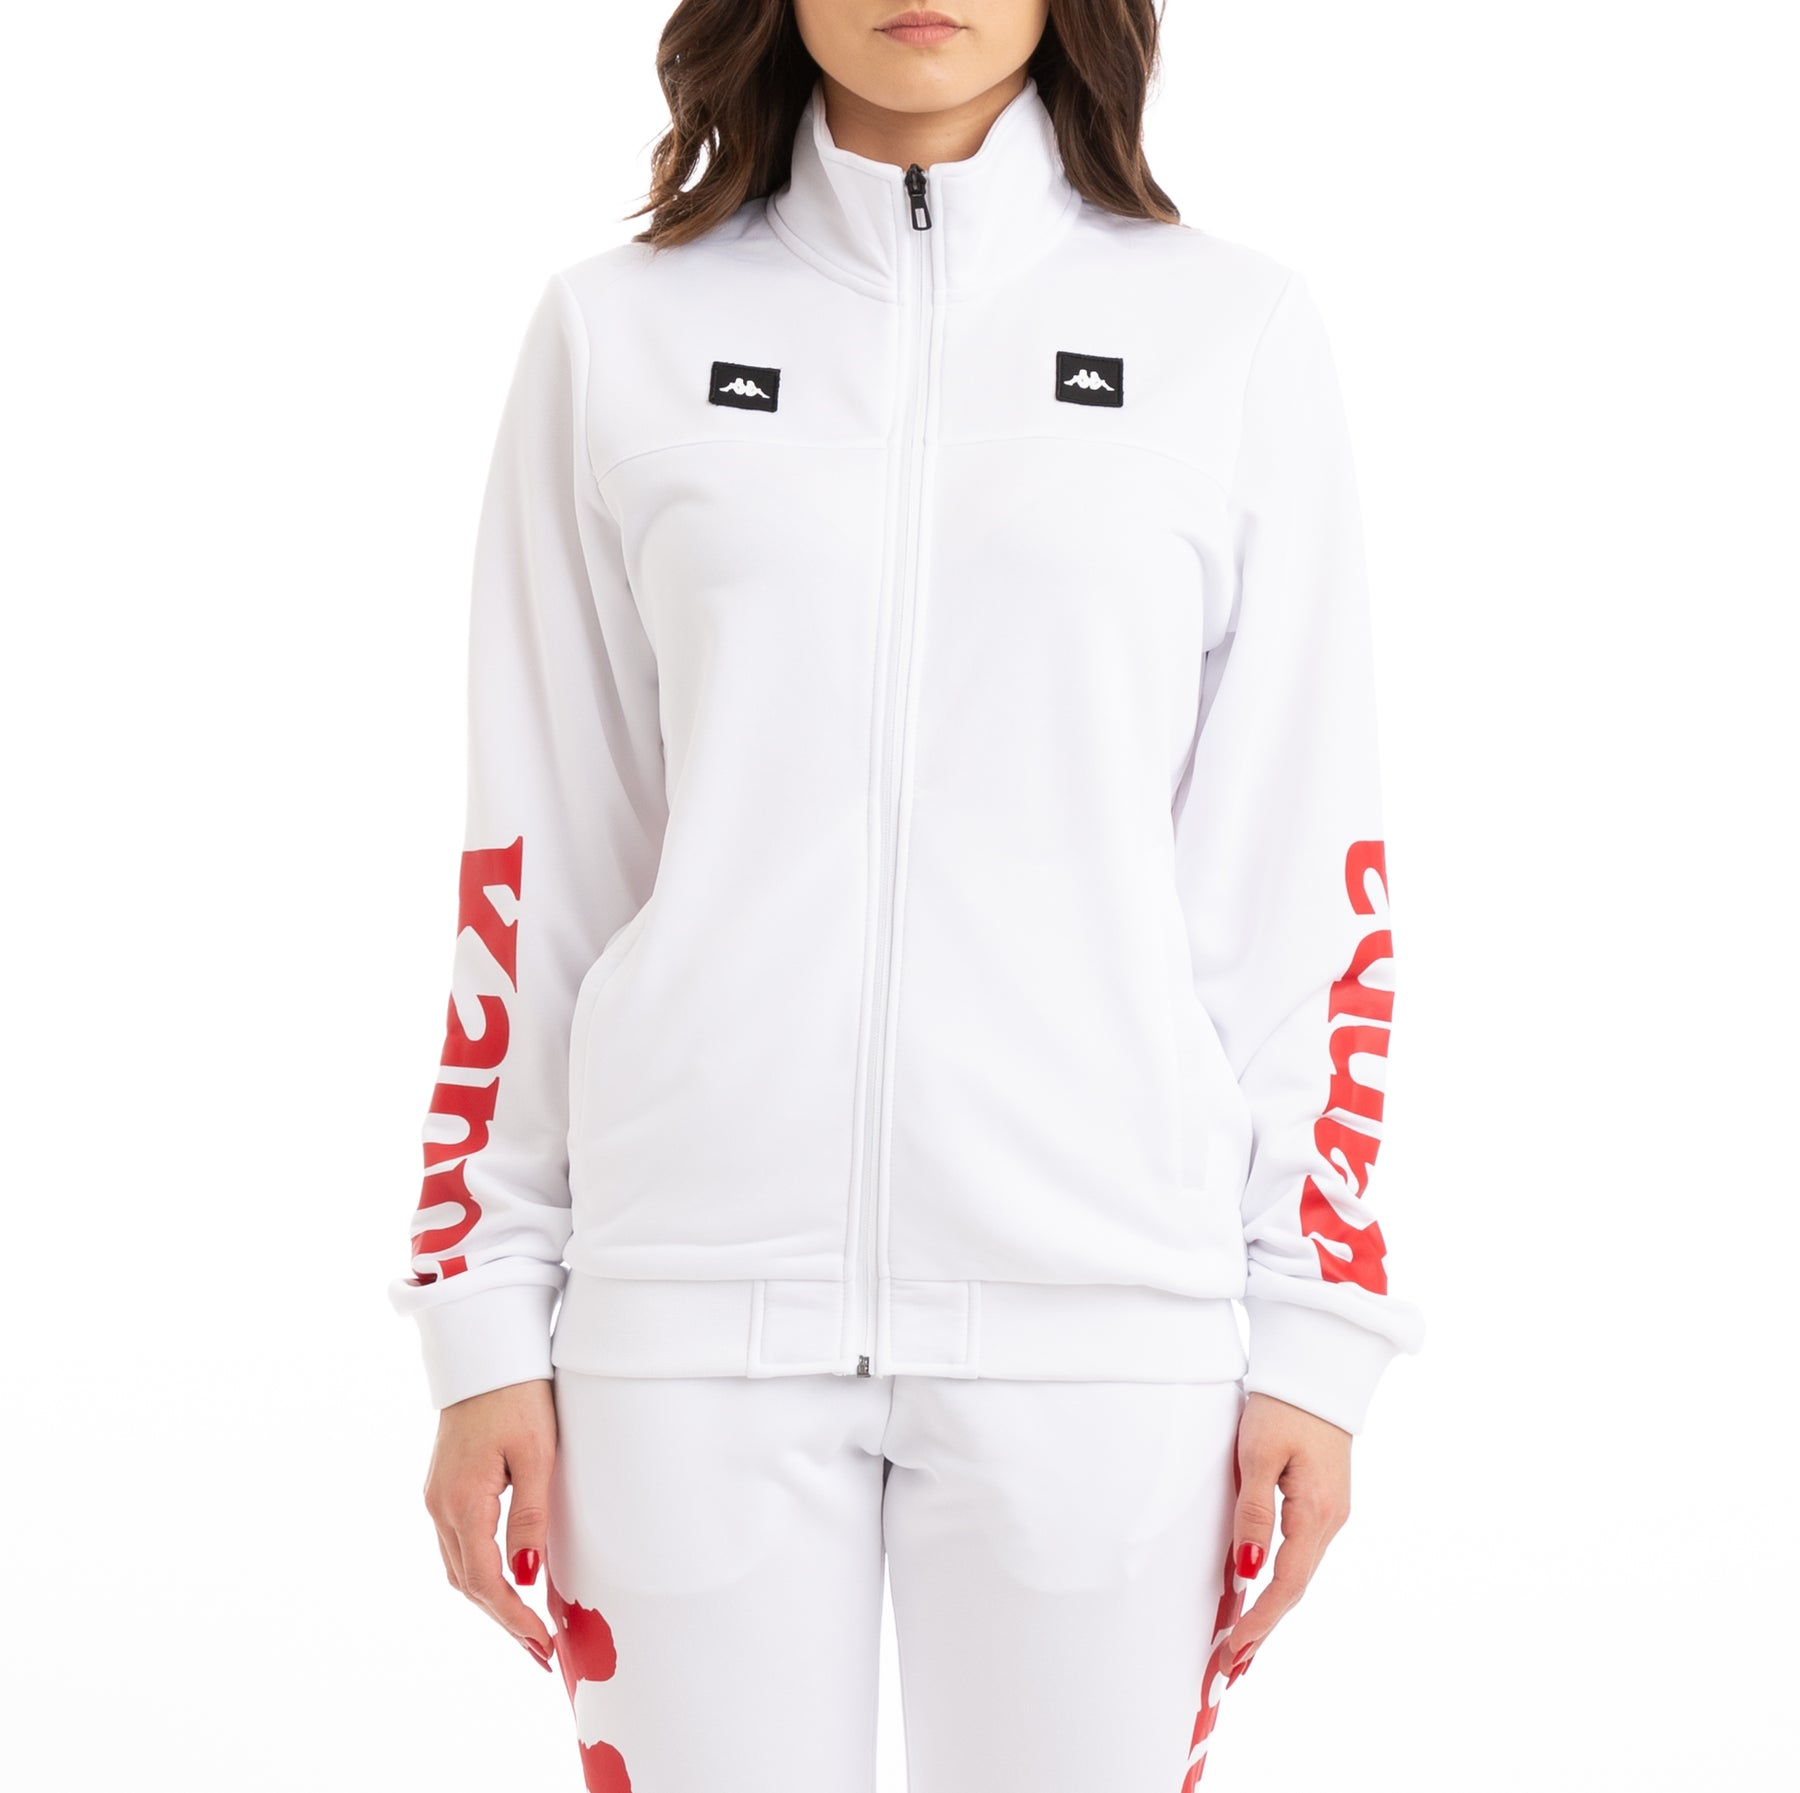 4b2d3ed266 Kappa Kalcio Bouvilly White Red Track Jacket – Kappa USA